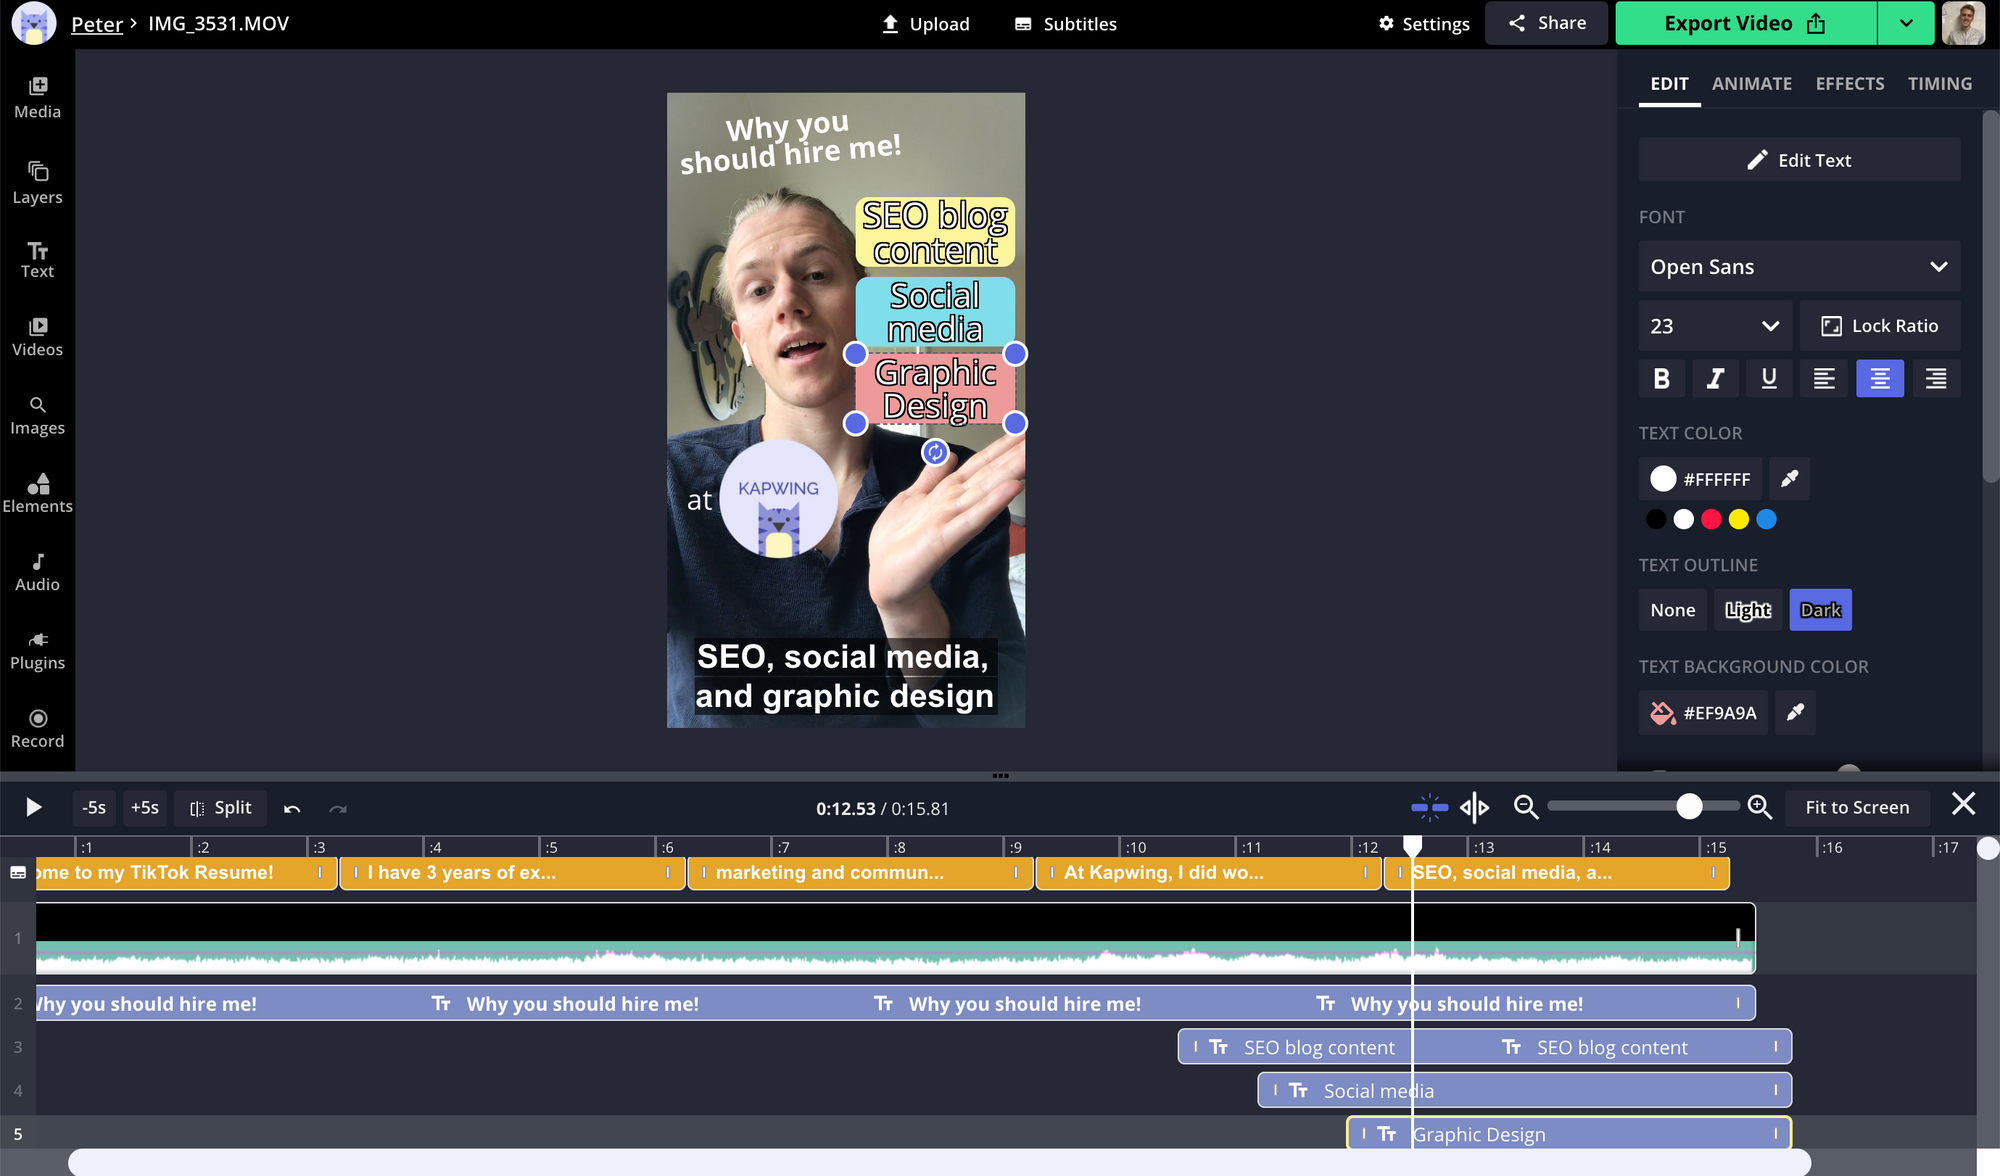 A screenshot showing the editing options for TikTok videos in the Kapwing Studio.